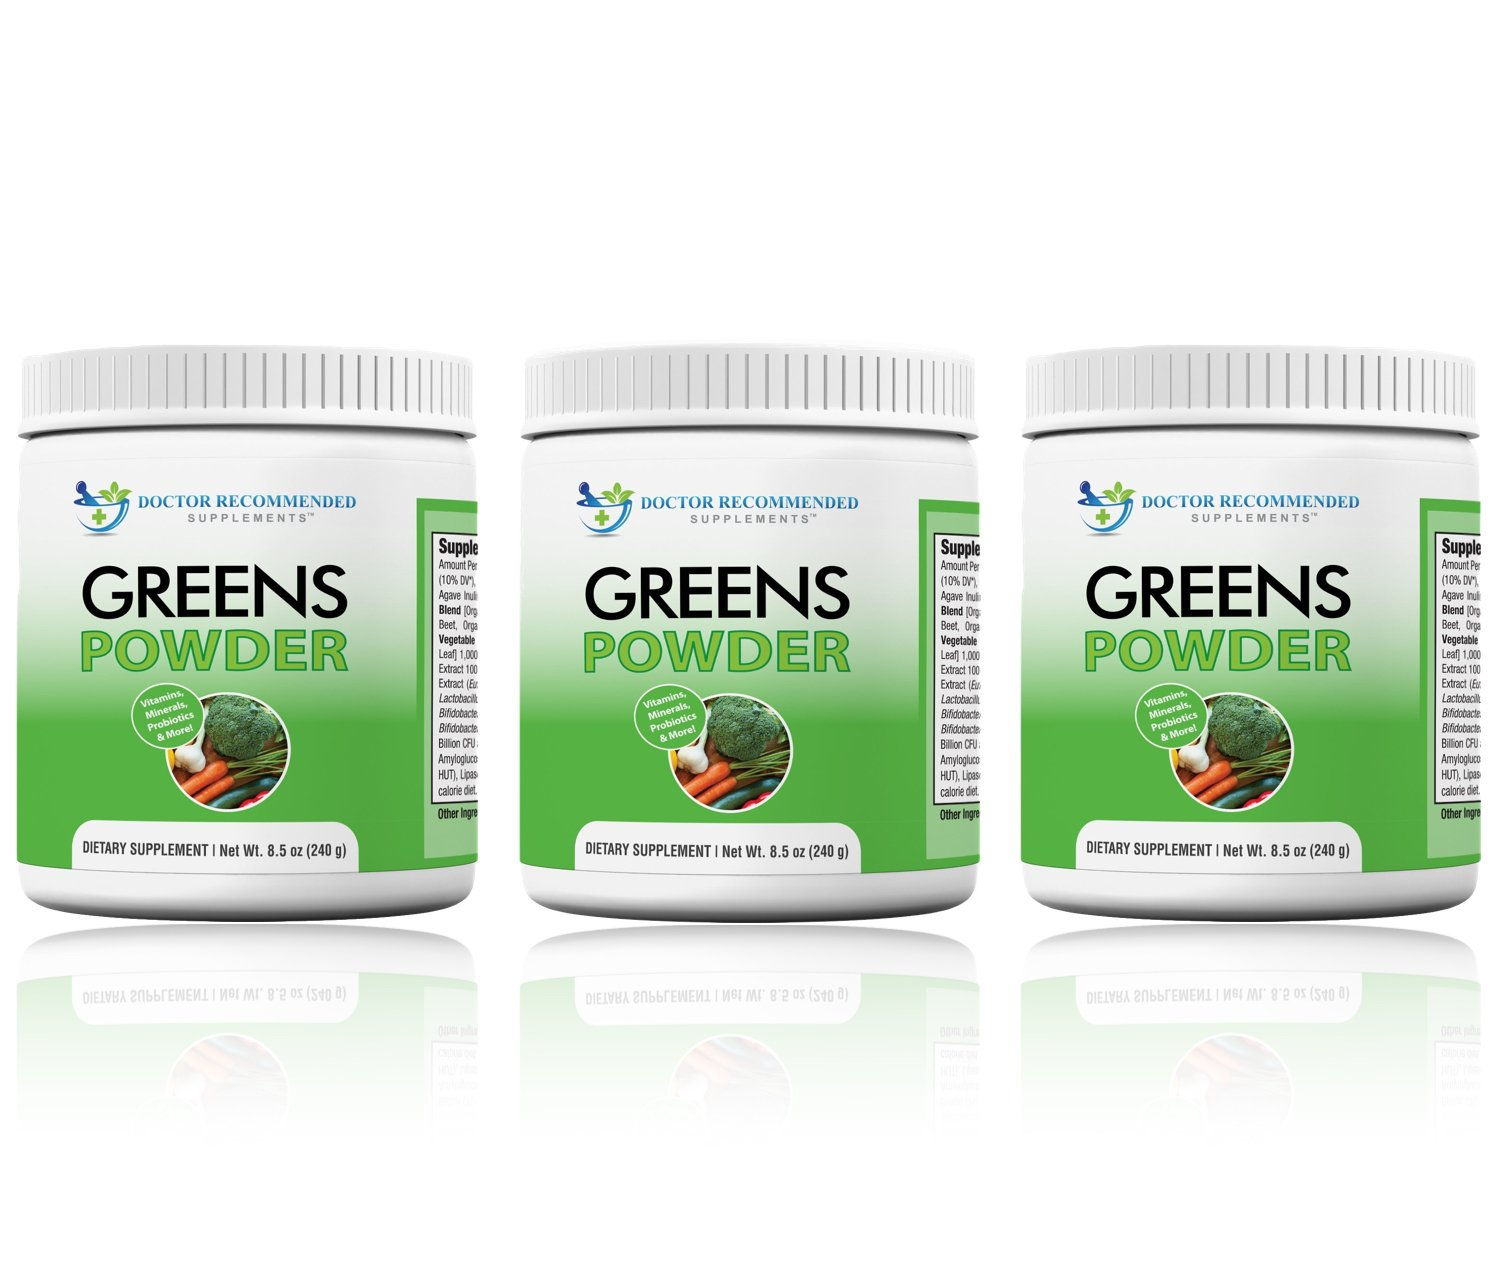 Greens Powder - Doctor Recommended Complete Natural Whole Super Food Nutritional Supplement - Greens Drink w/Organic Fruits, Vegetables, (Pack of 3)